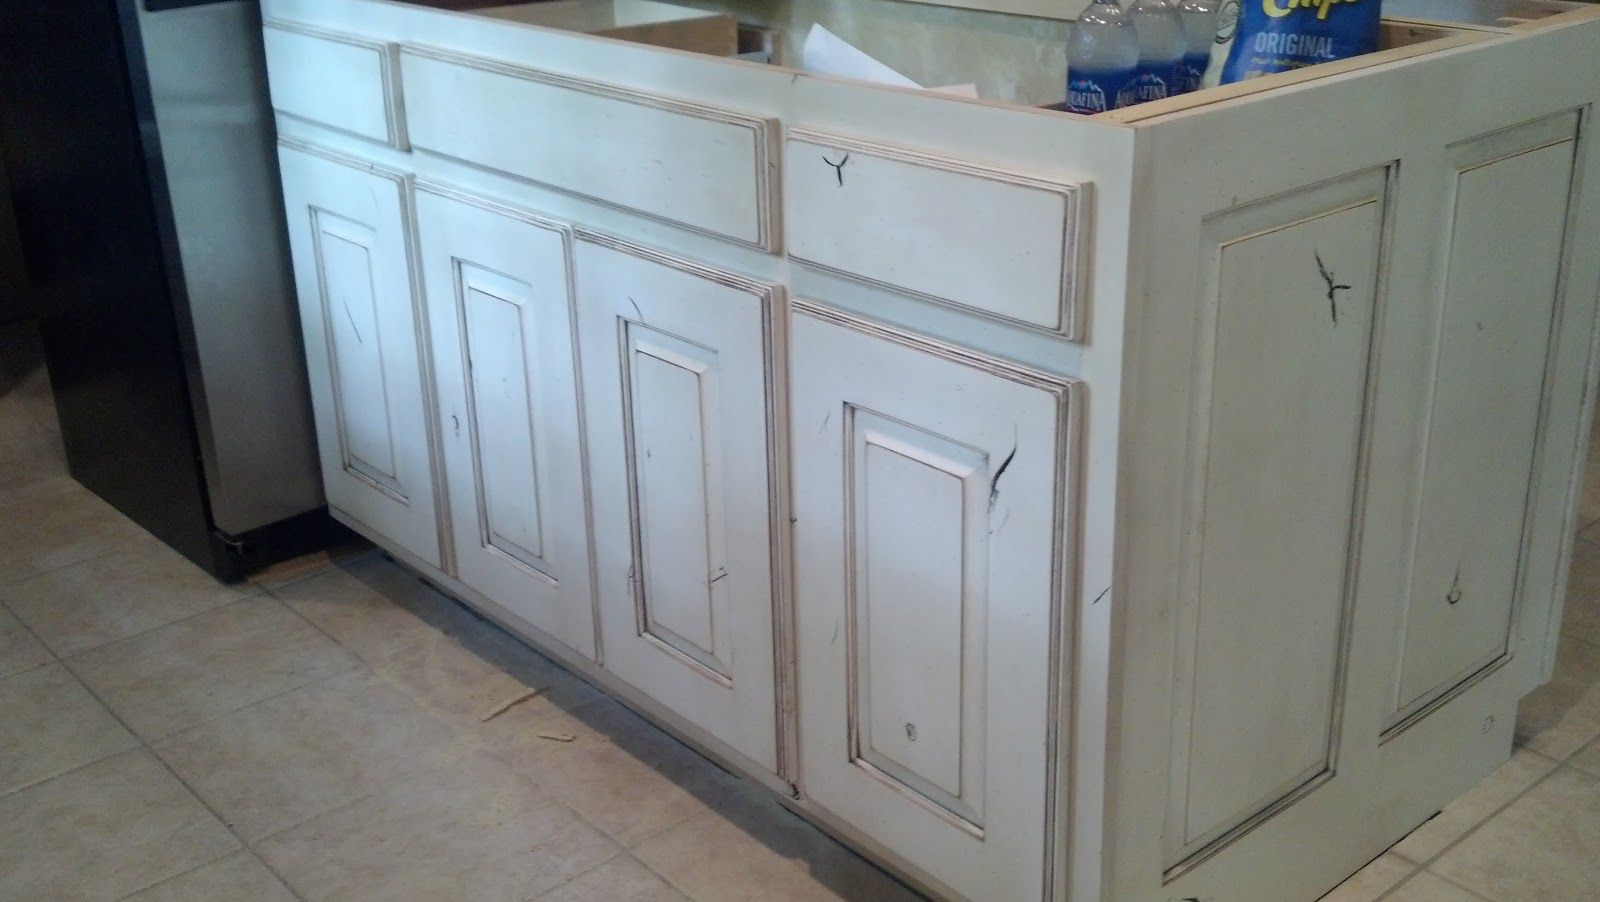 Adkisson\'s Cabinets: White Painted and Distressed Knotty Alder ...